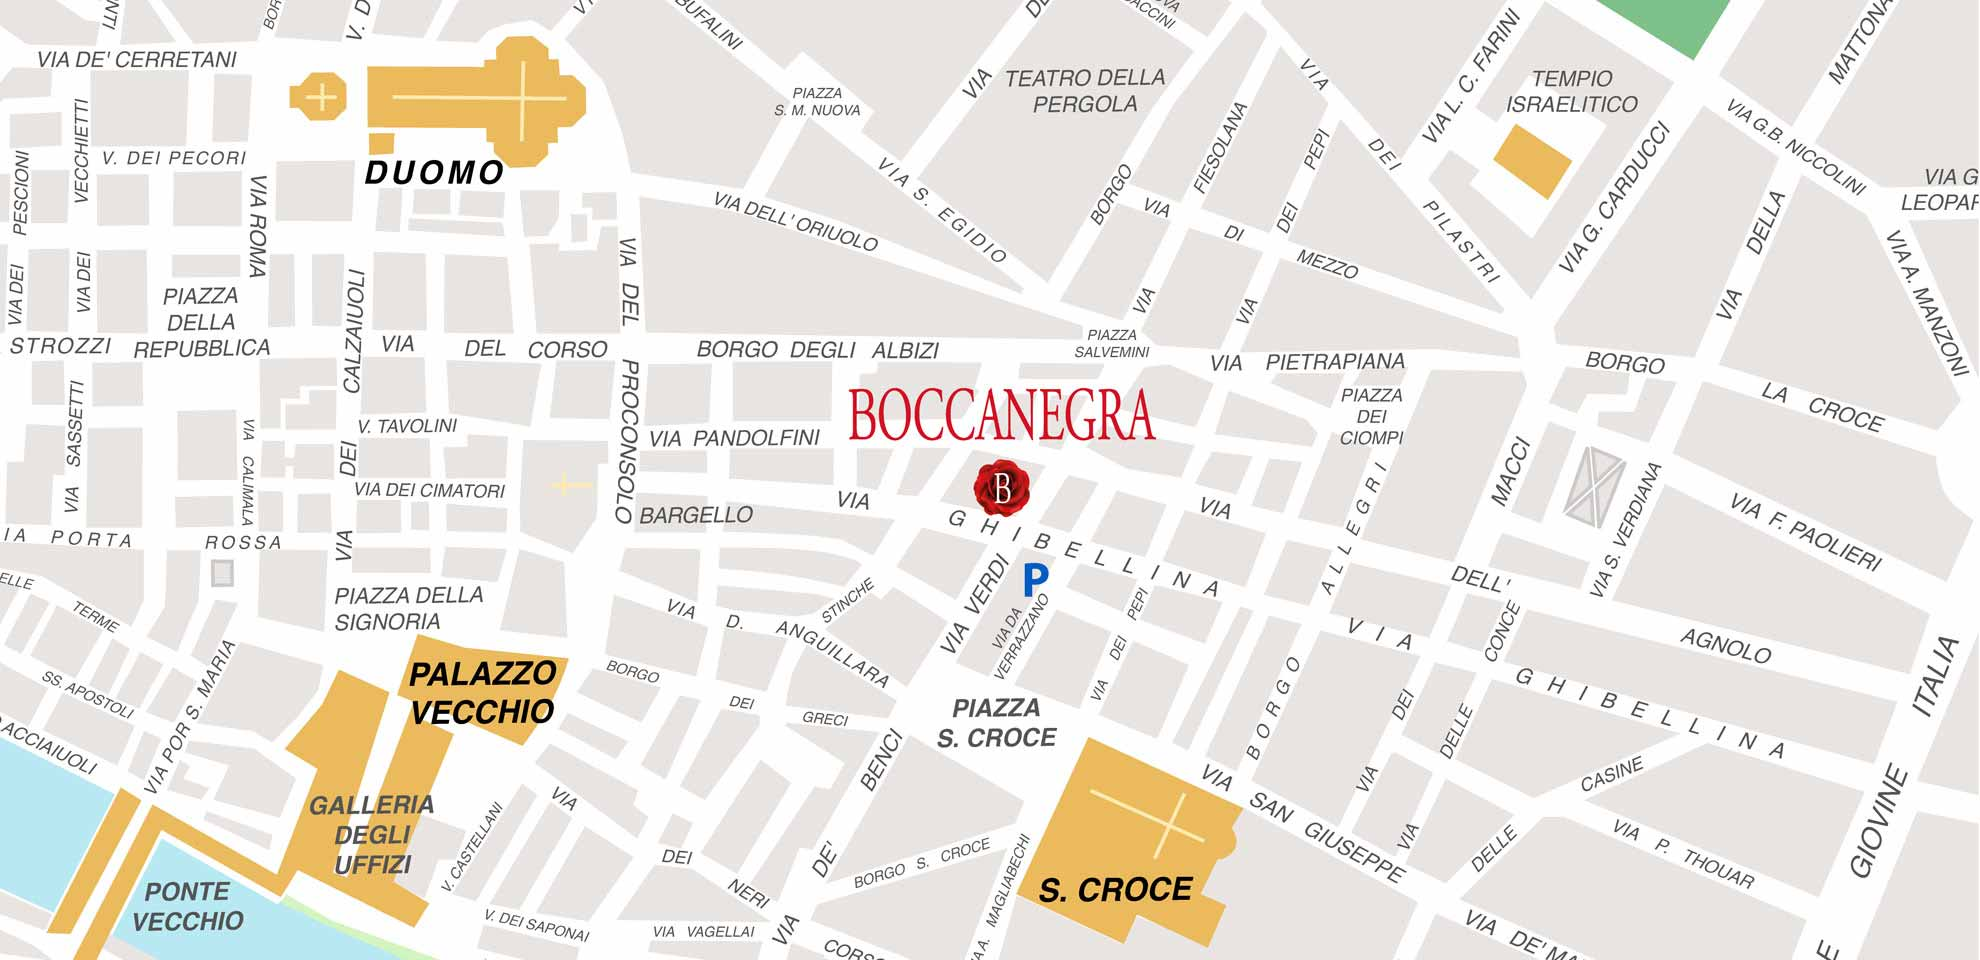 Boccanegra Florence Restaurant location map. Easy access by foot or by car. A garage is nearby the restaurant